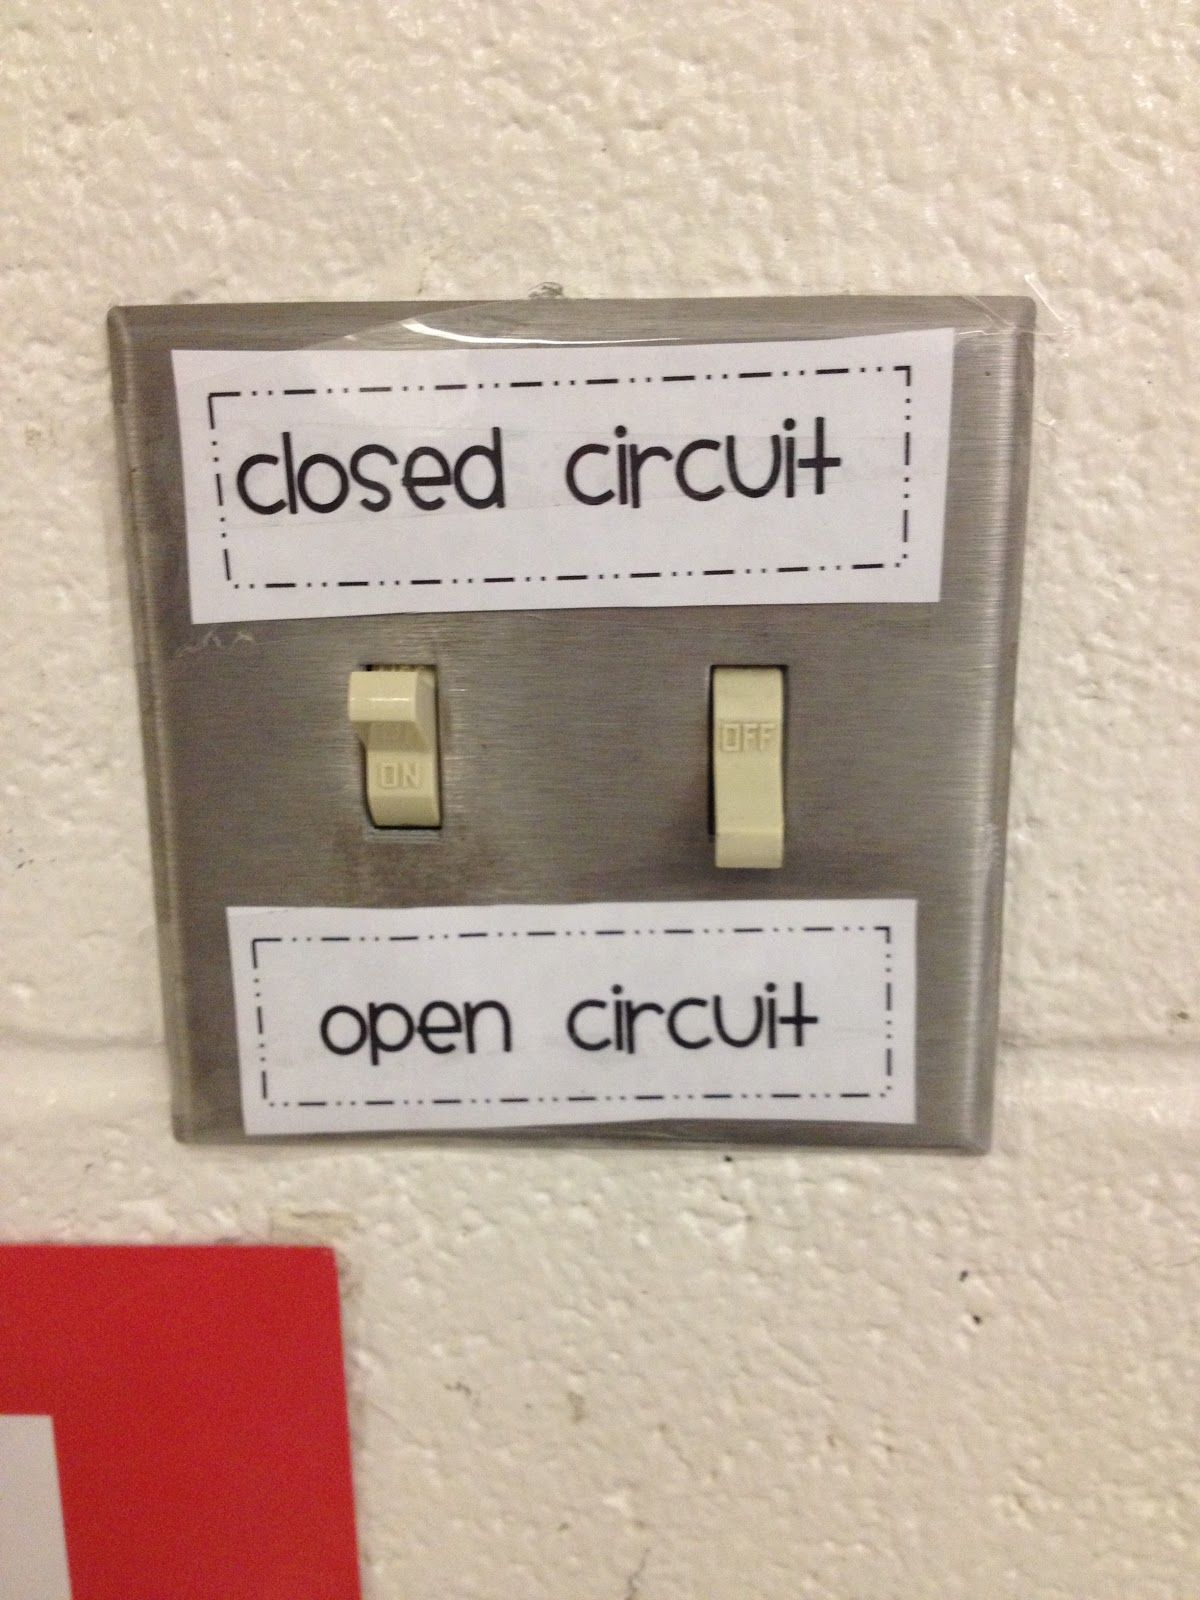 The Circuit Or Switch Is Open The Light Is Off The Circuit Or Switch